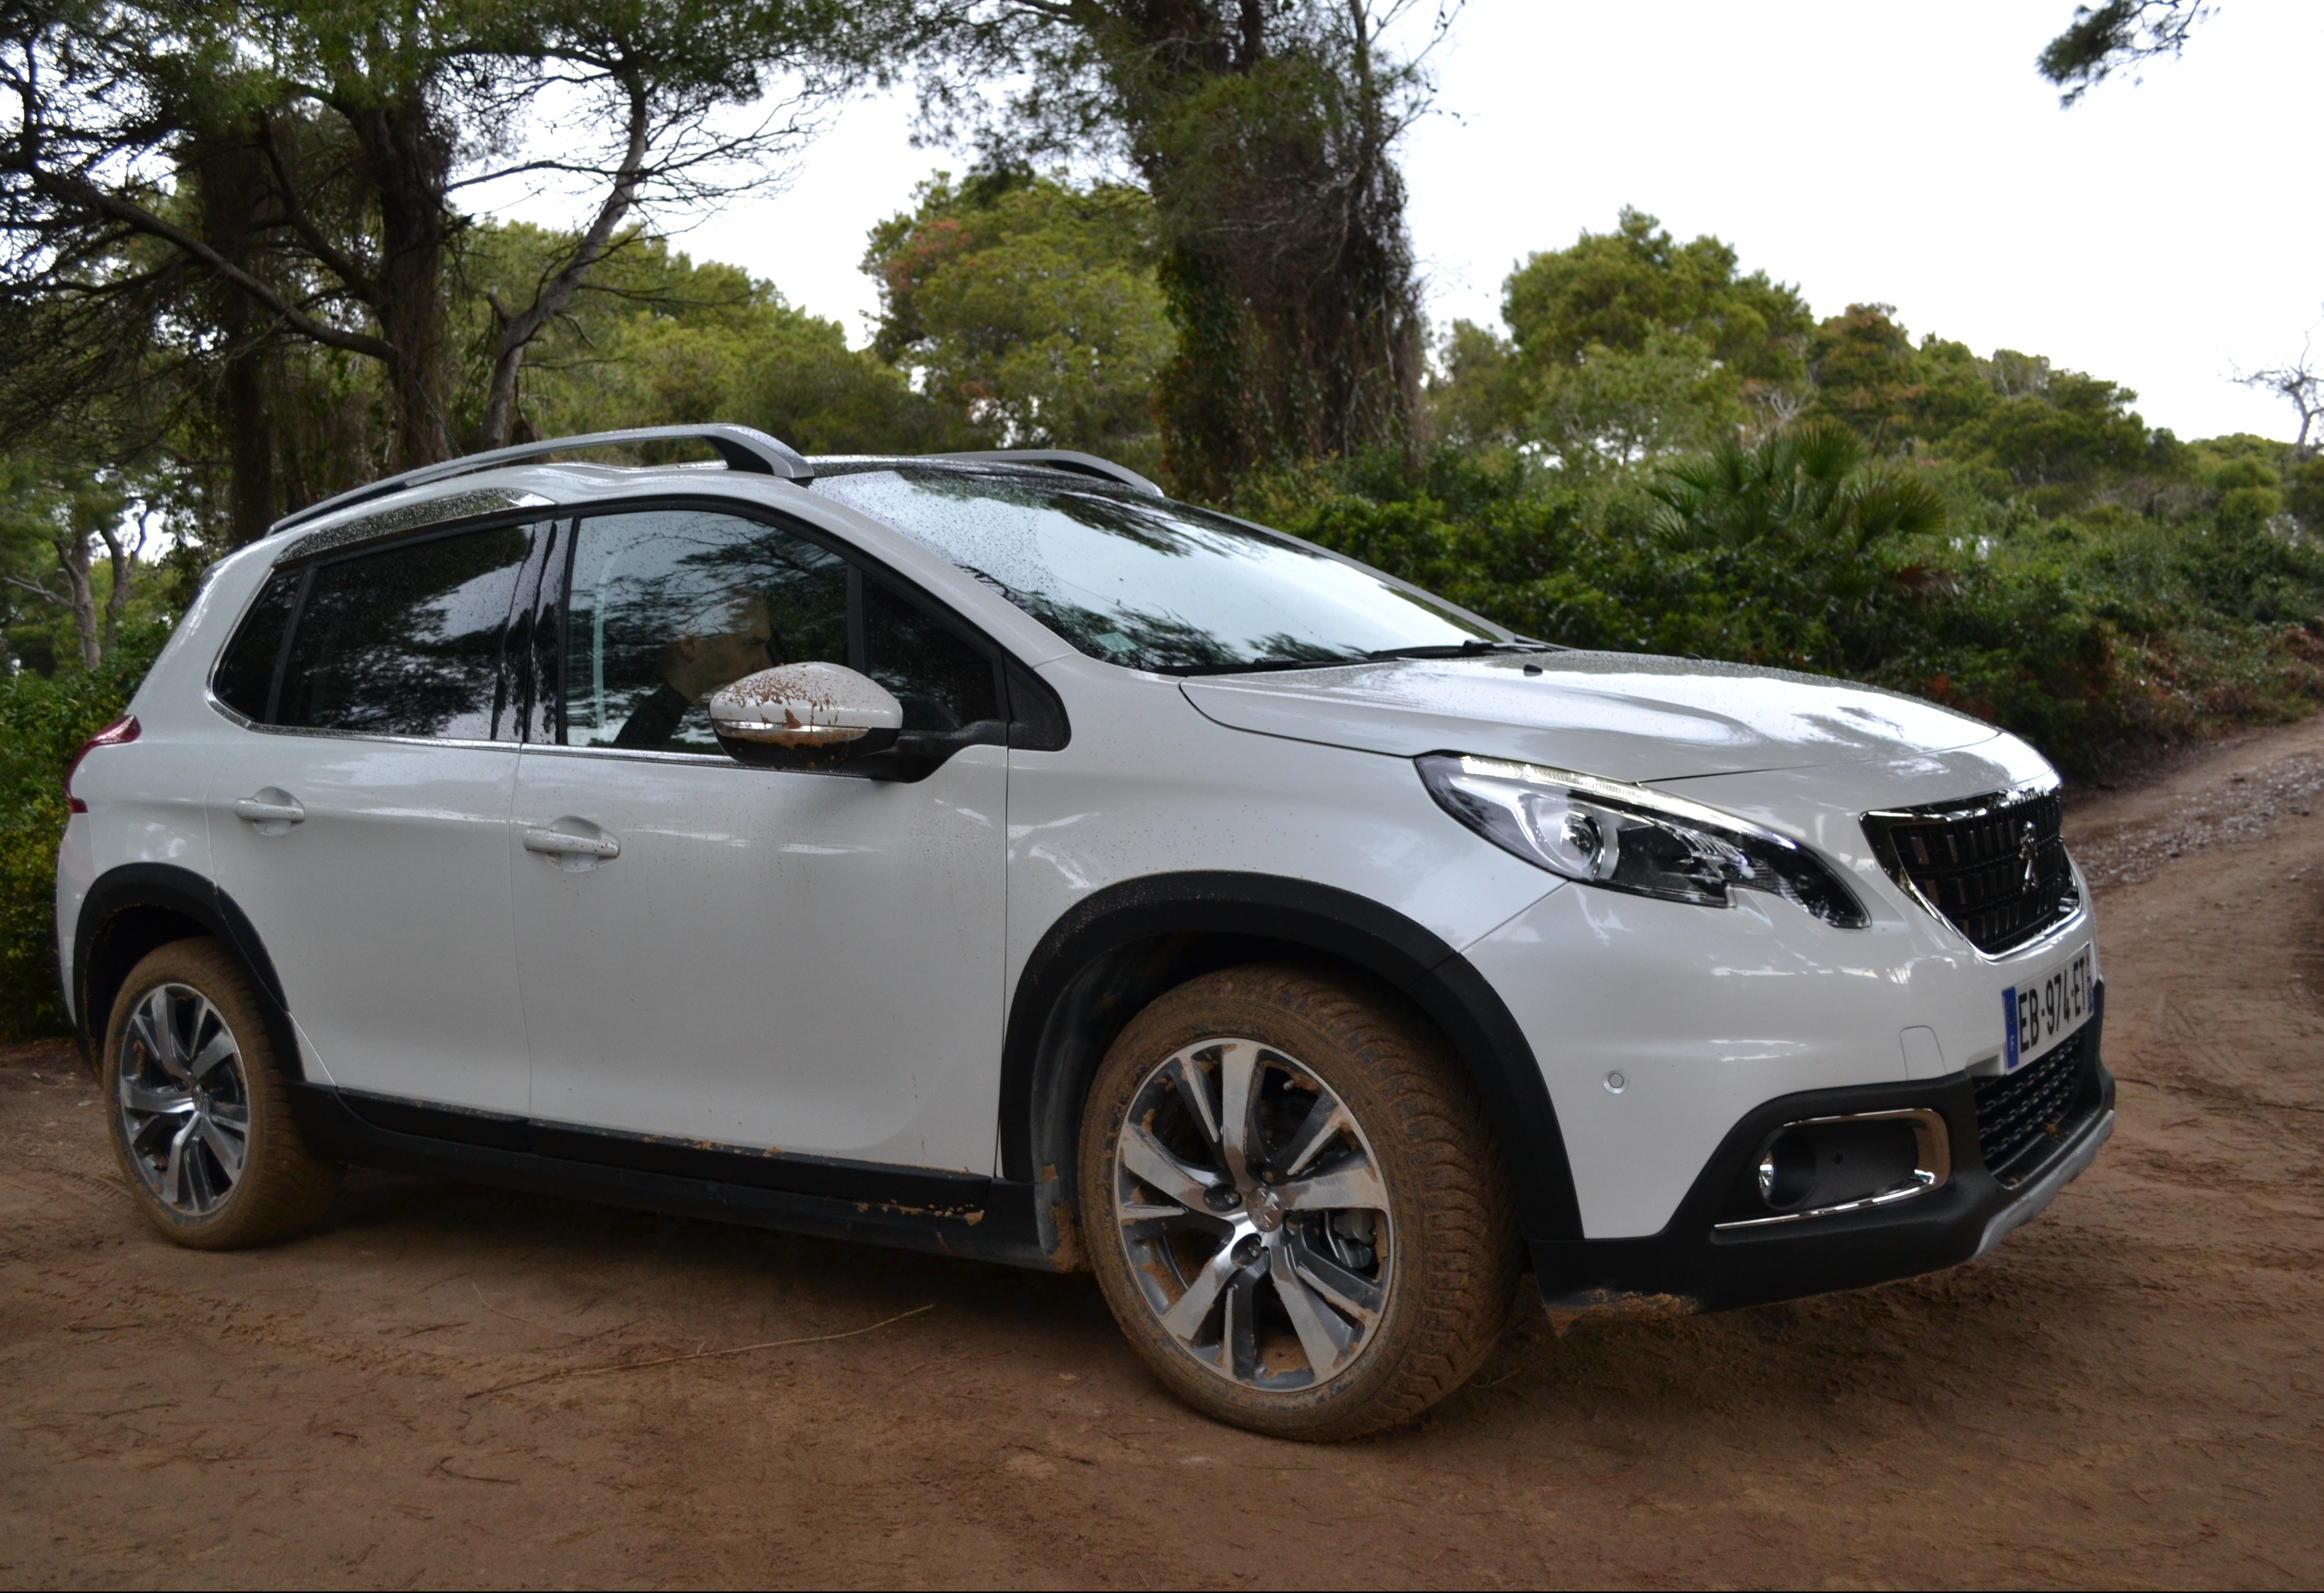 Peugeot, 2008, SUV, SUV compact, essai, testdrive, grip control, restylage, peugeot 2008